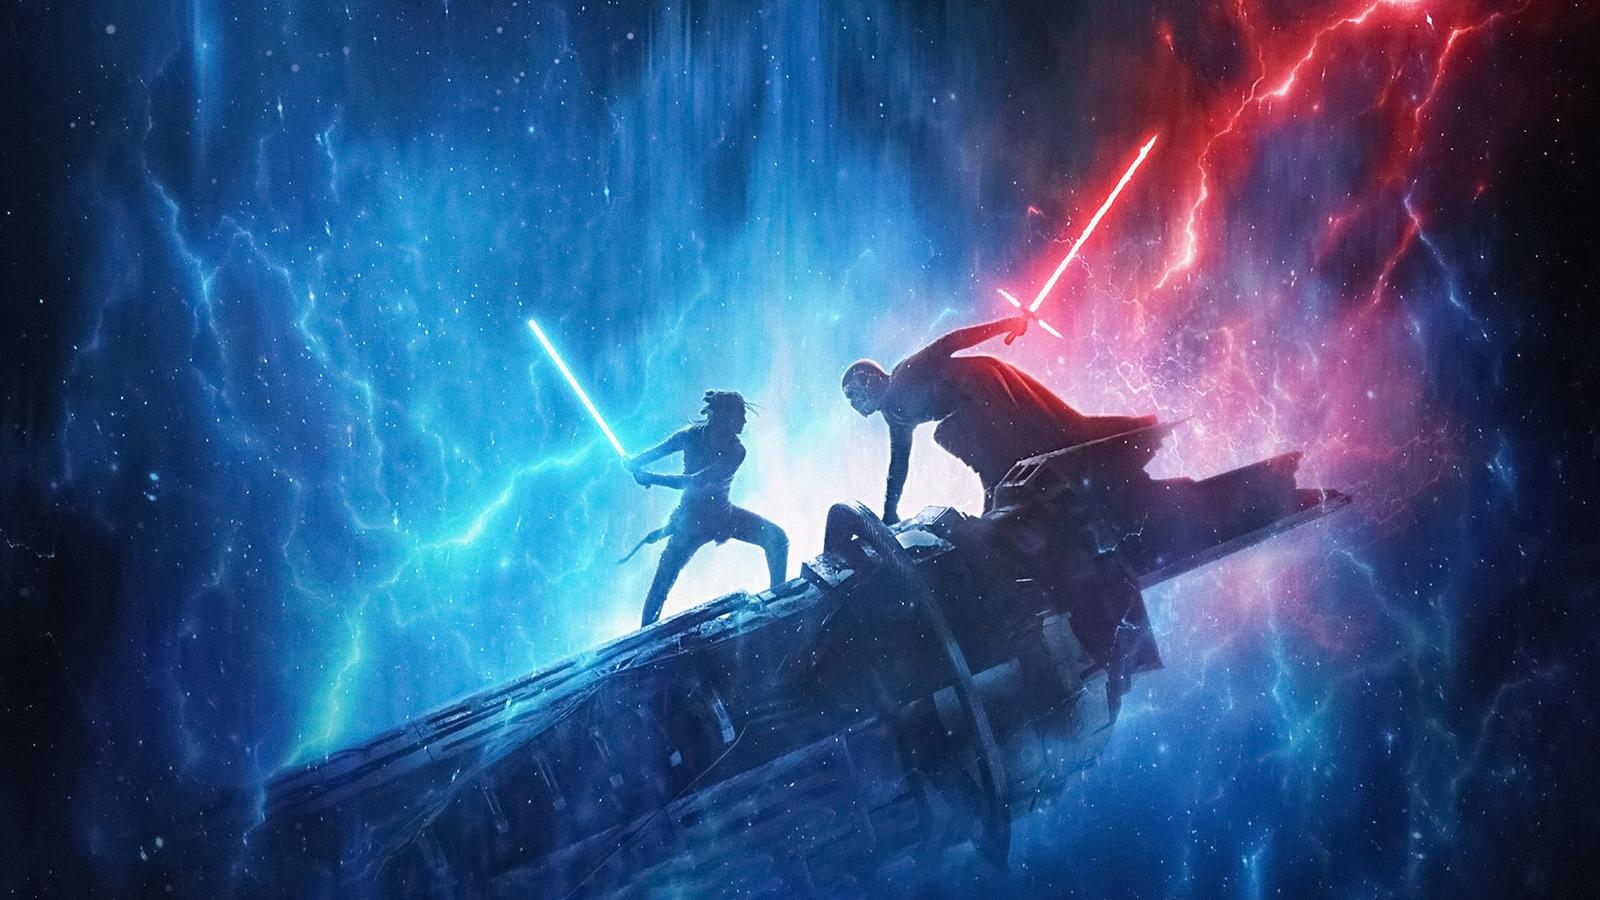 1600x900 Star Wars The Rise Of Skywalker 2019 4k 1600x900 Resolution Hd 4k Wallpapers Images Backgrounds Photos And Pictures